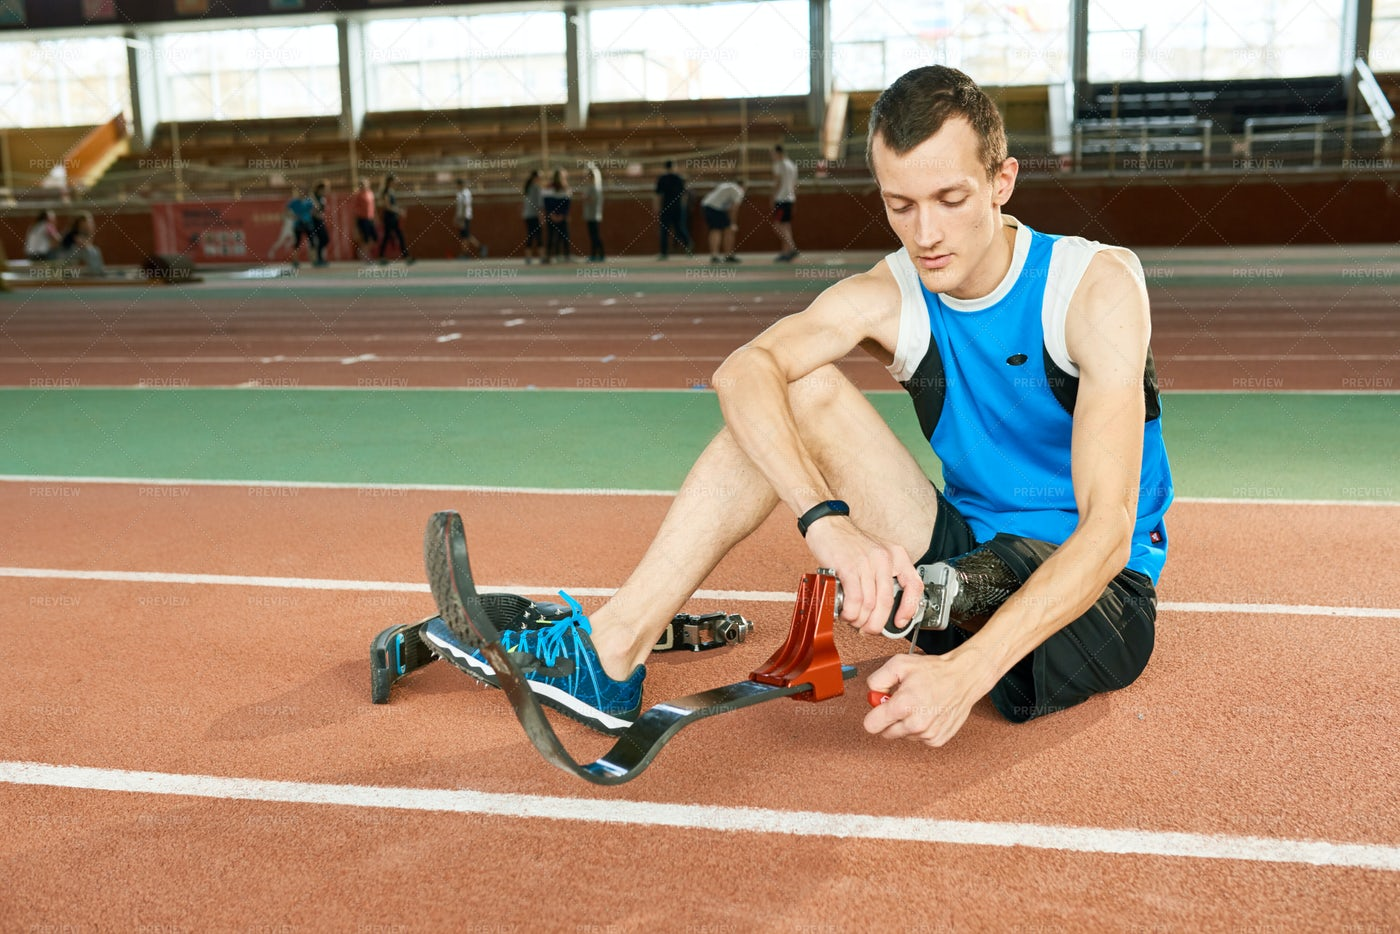 Handicapped Sportsman Putting On ...: Stock Photos